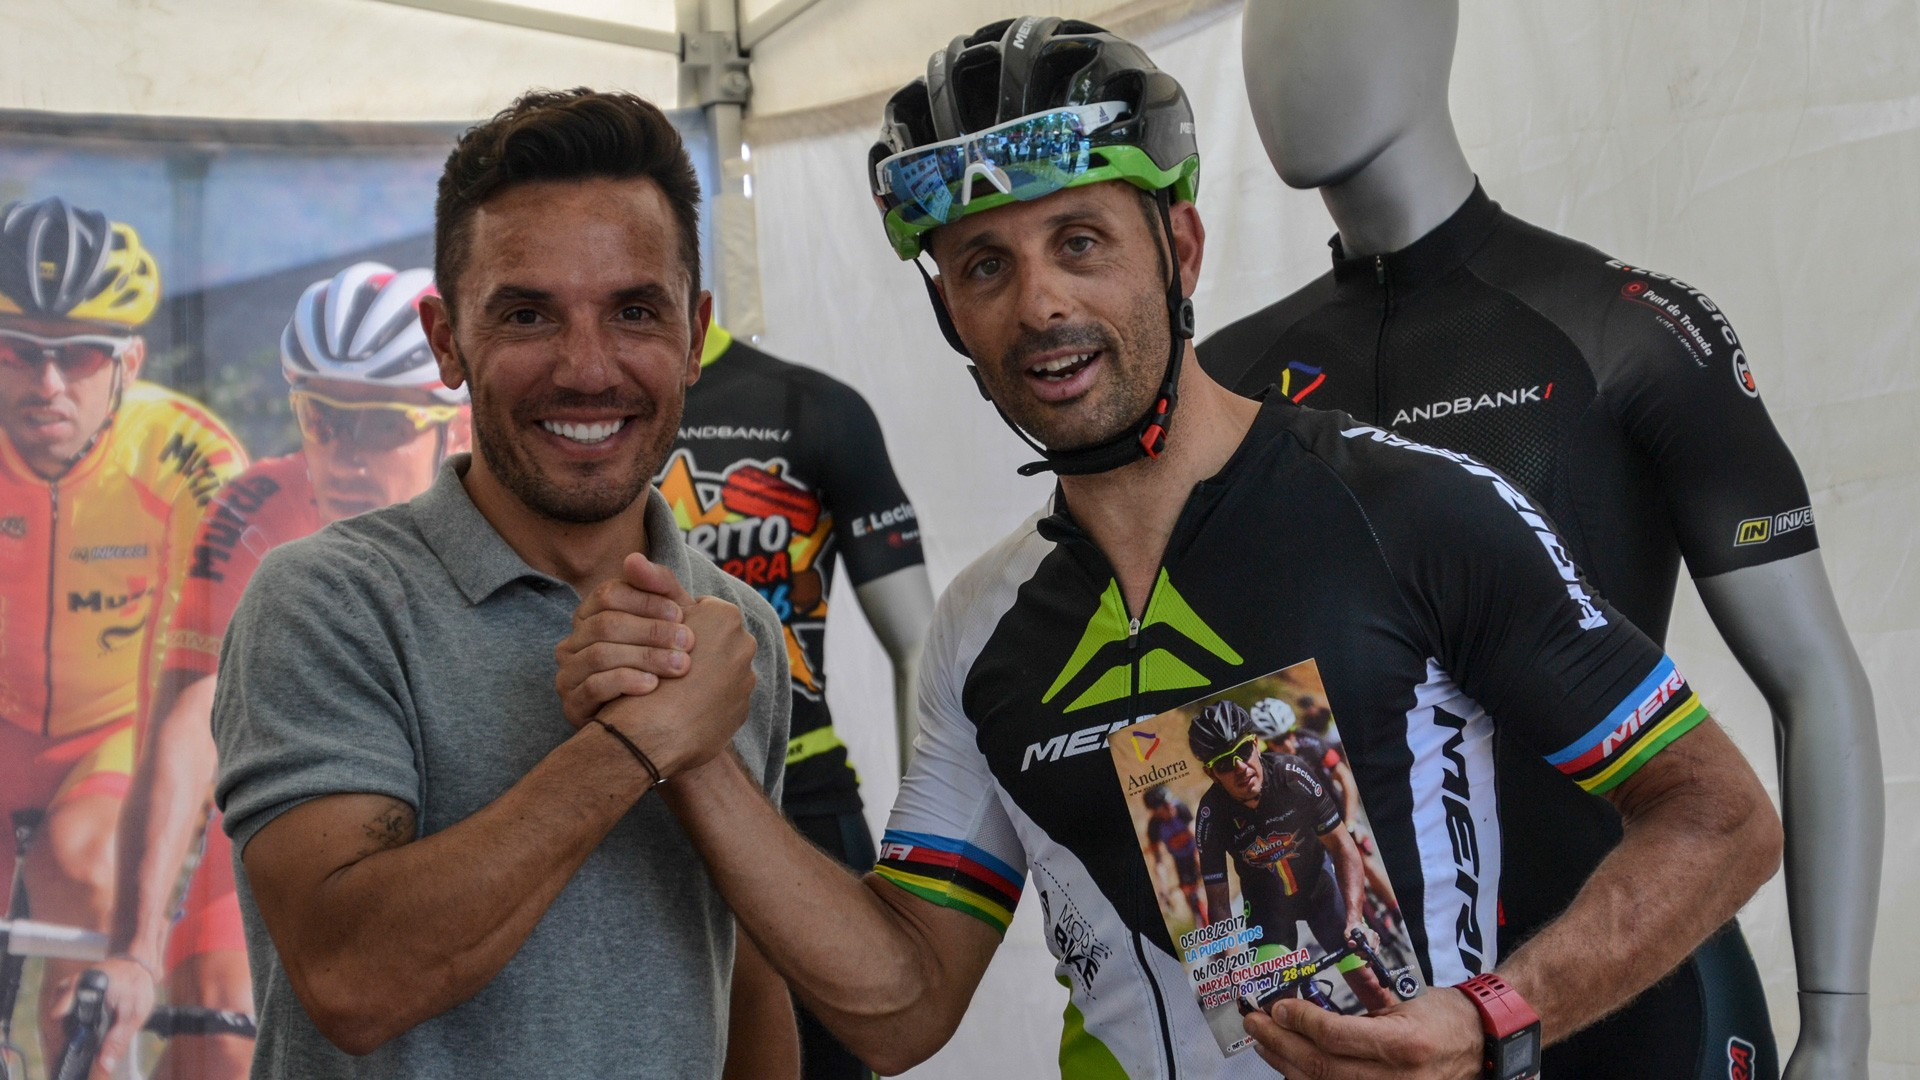 Racing legends do their thing on and off the course at Sea Otter Europe